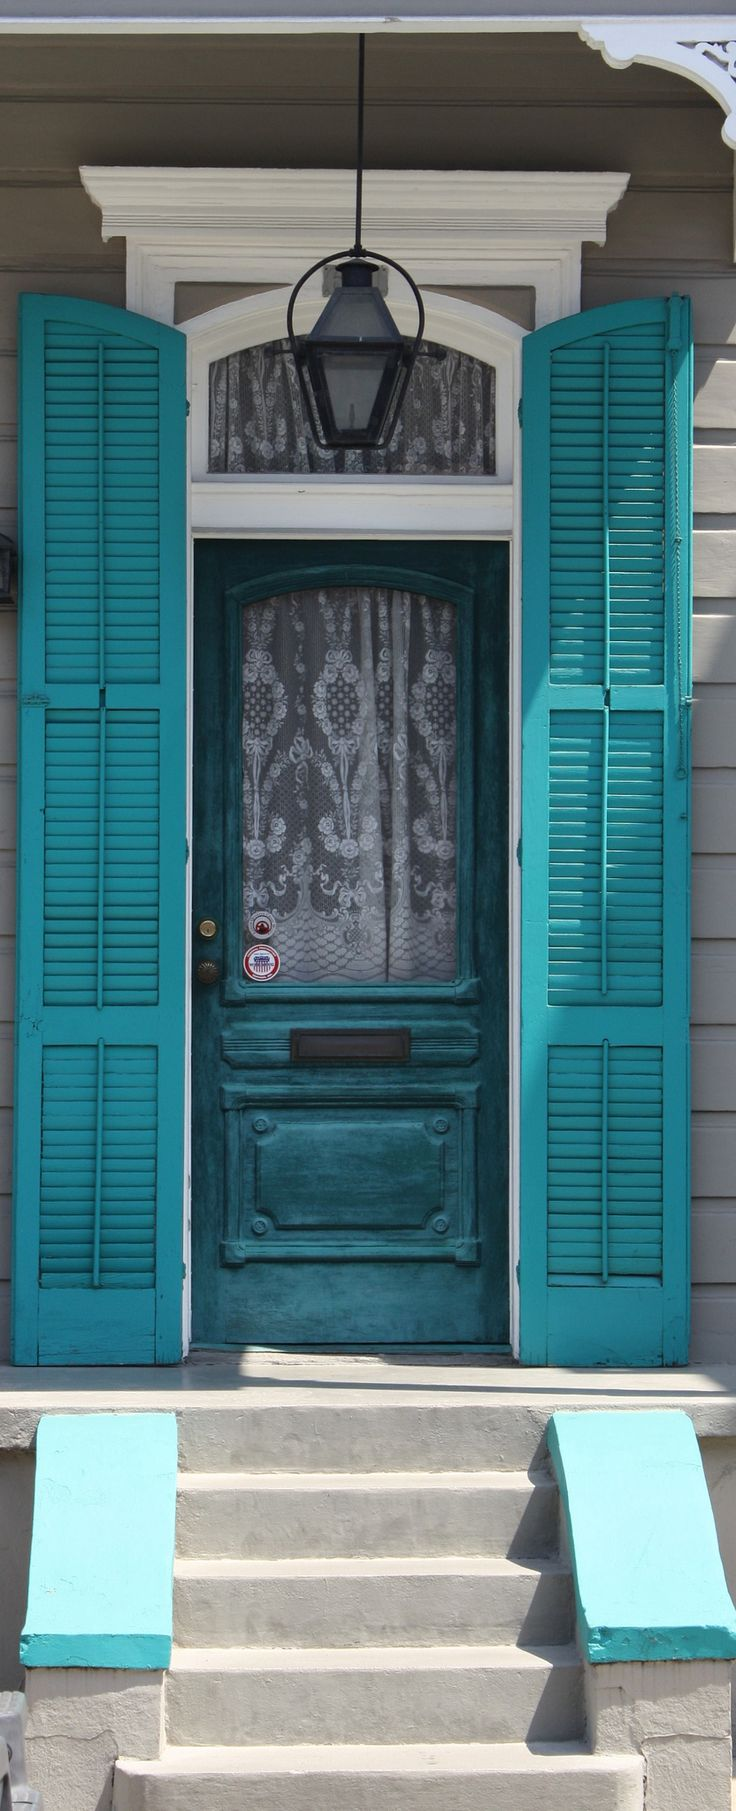 Lovely combination of soft grey siding/concrete, pristine white trim and turquoise front door with shutters | New Orleans, April 11, 2012 by gcl1964 via Flickr